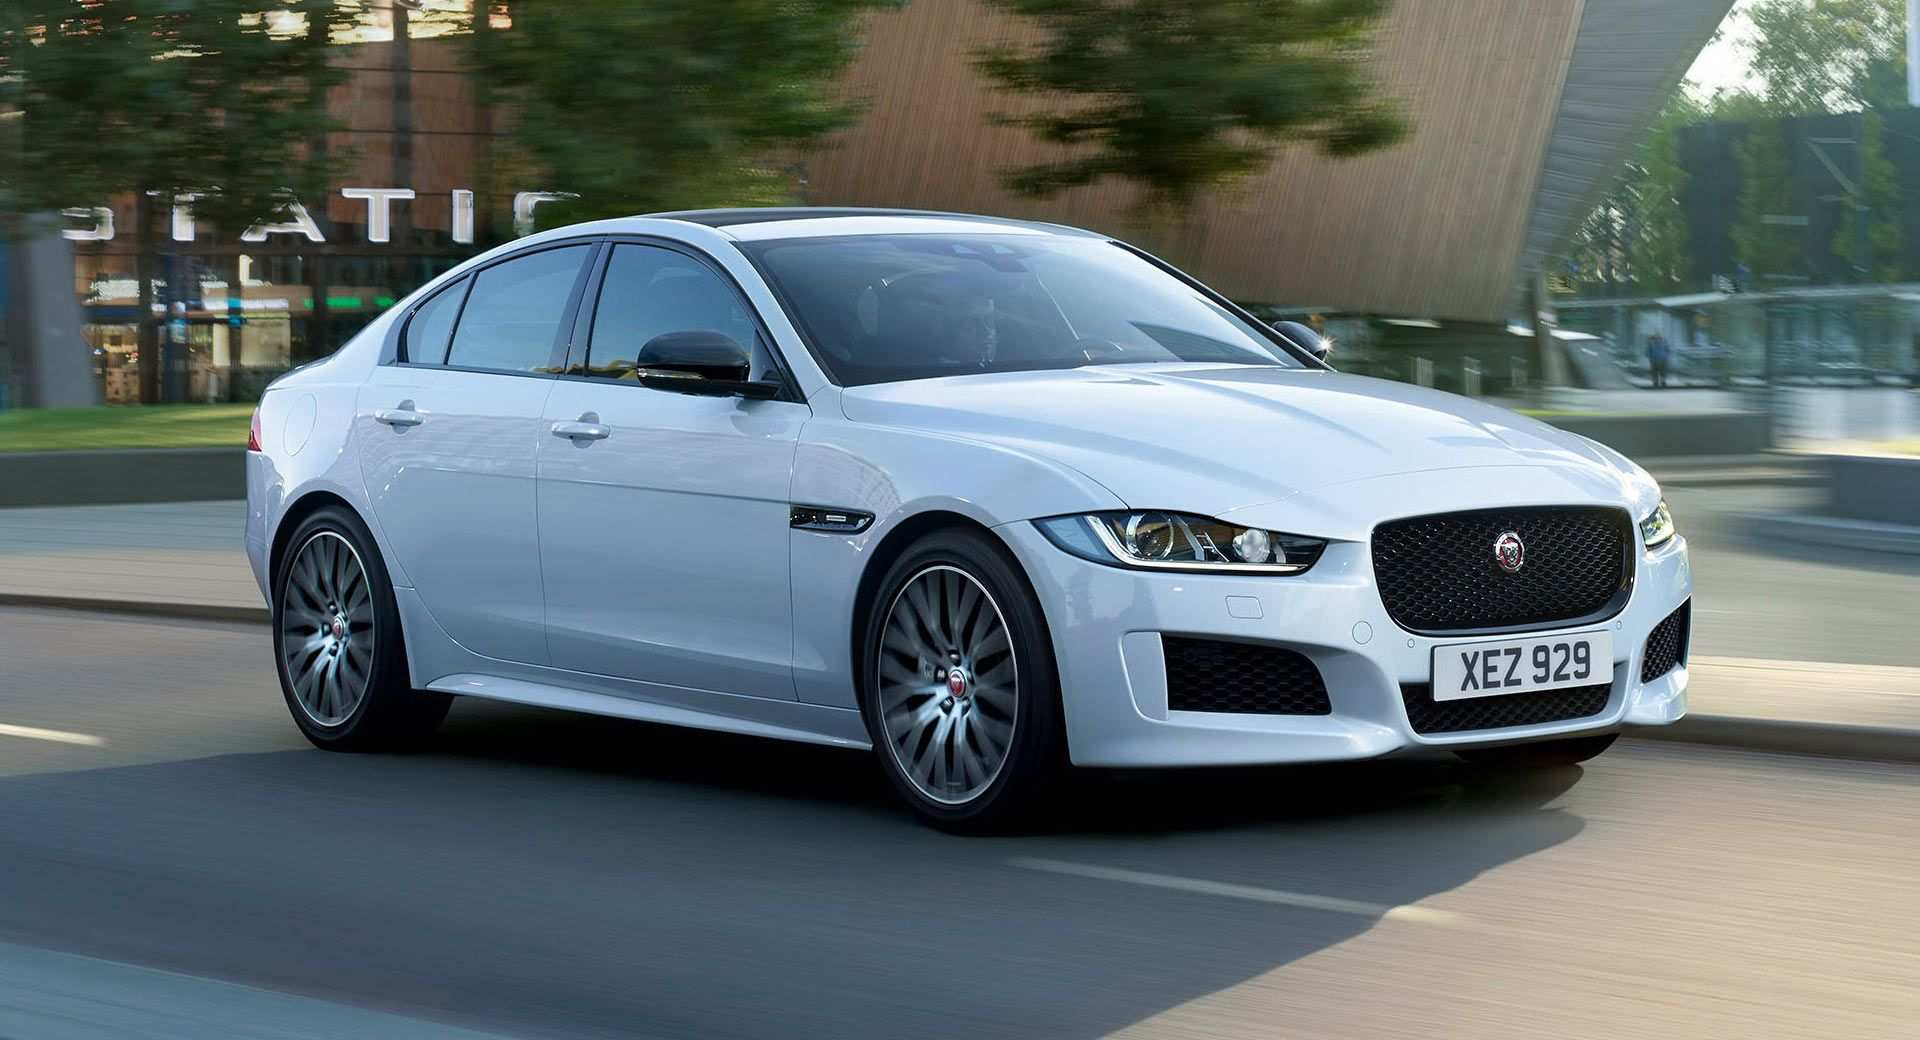 66 Great 2020 Jaguar Xe Landmark First Drive with 2020 Jaguar Xe Landmark